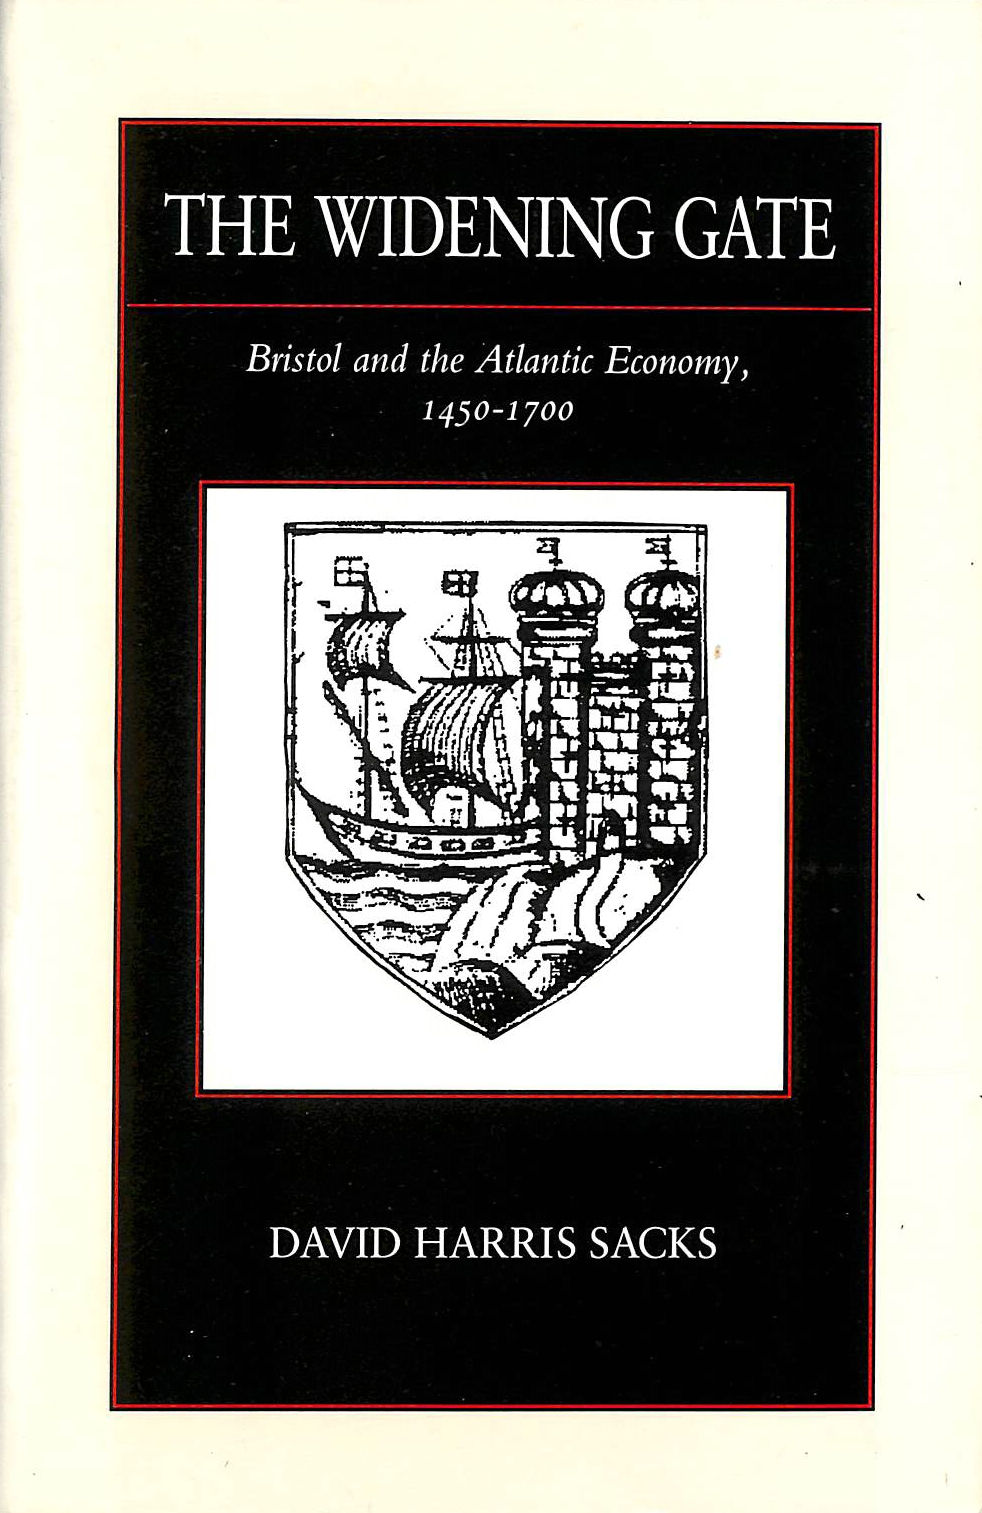 Image for The Widening Gate: Bristol and the Atlantic Economy, 1450-1700 (The New Historicism: Studies in Cultural Poetics)